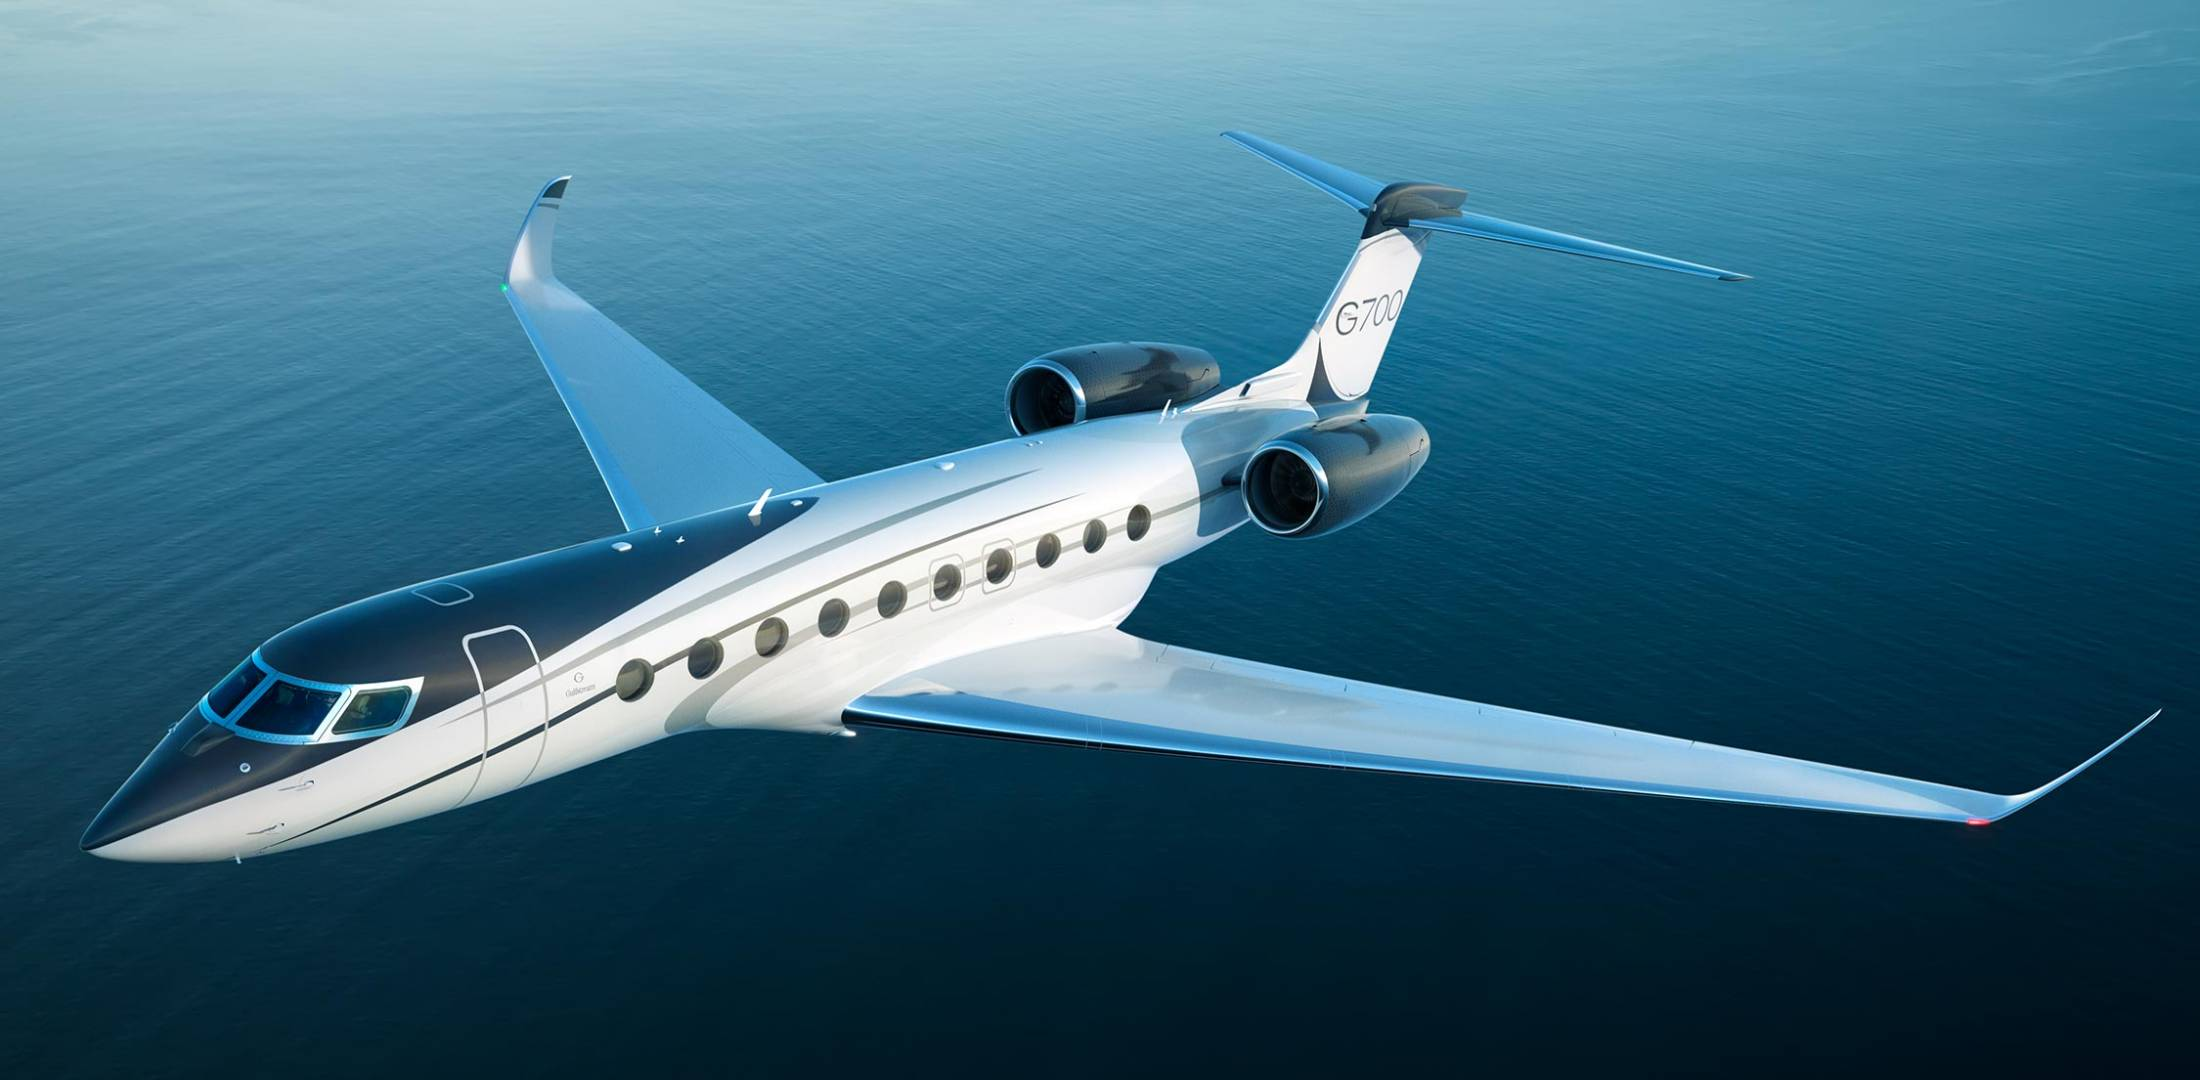 Gulfstream 700 (Photo: Gulfstream Aerospace)